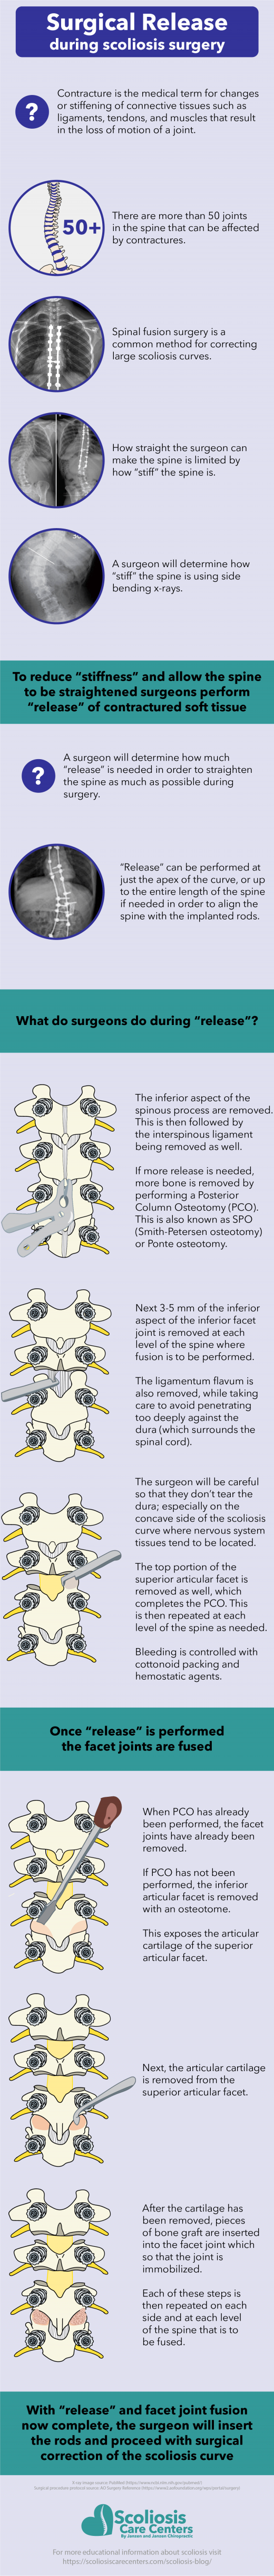 Surgical Release During Scoliosis Surgery #infographic